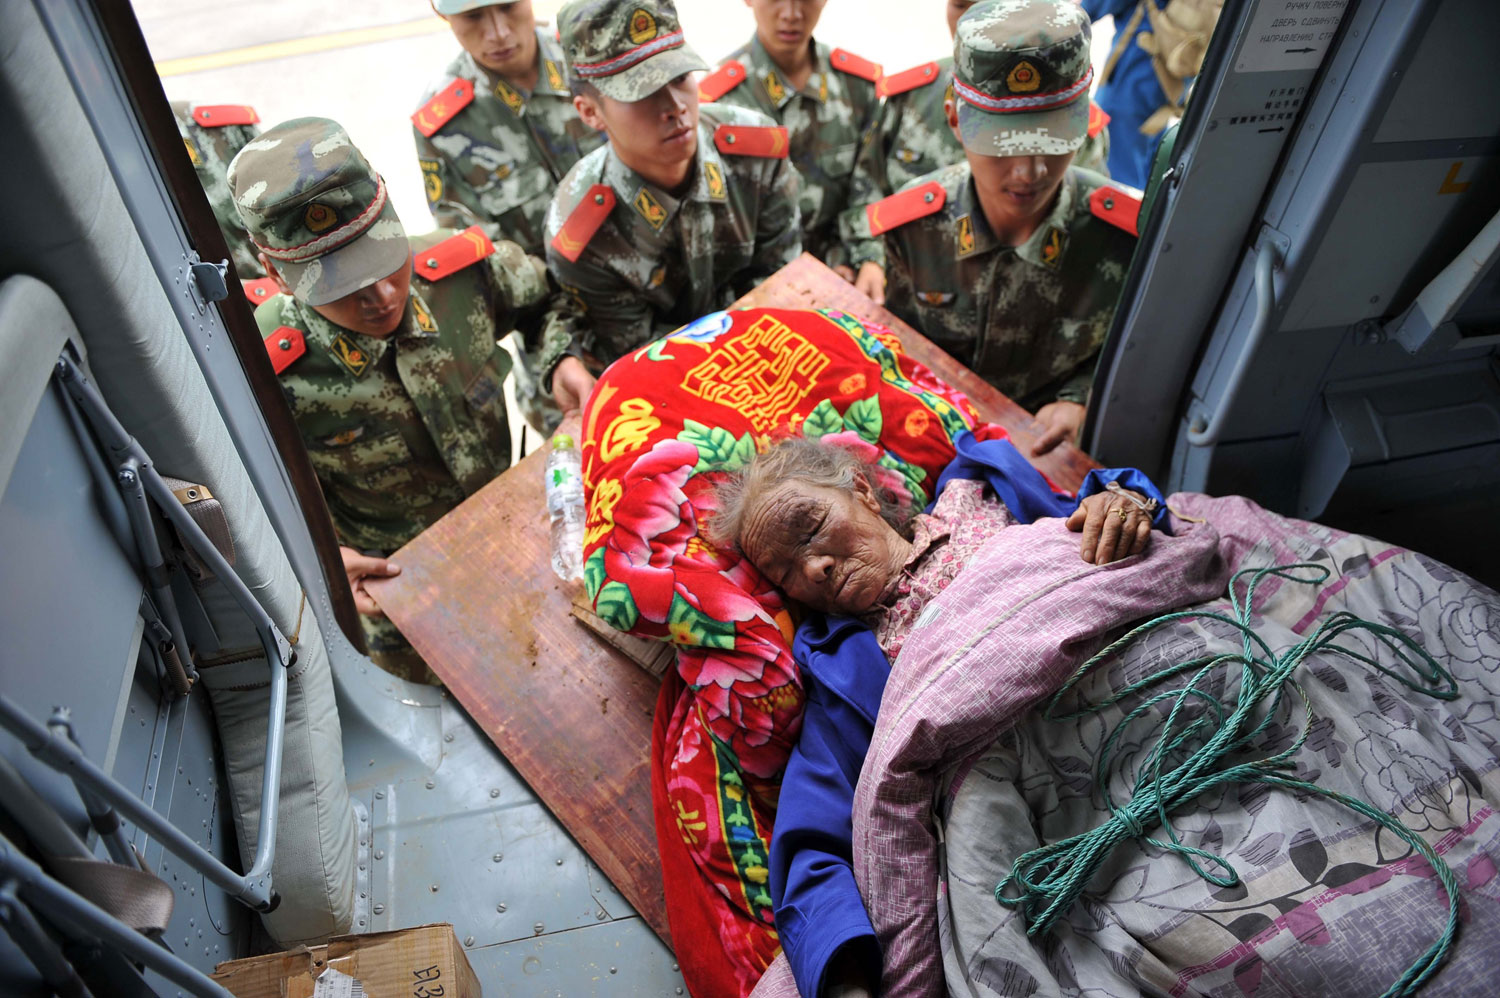 Rescuers cary an injured person in the quake-hit Longtoushan Town of Ludian County in Zhaotong City, southwest China's Yunnan Province on Aug. 4, 2014.